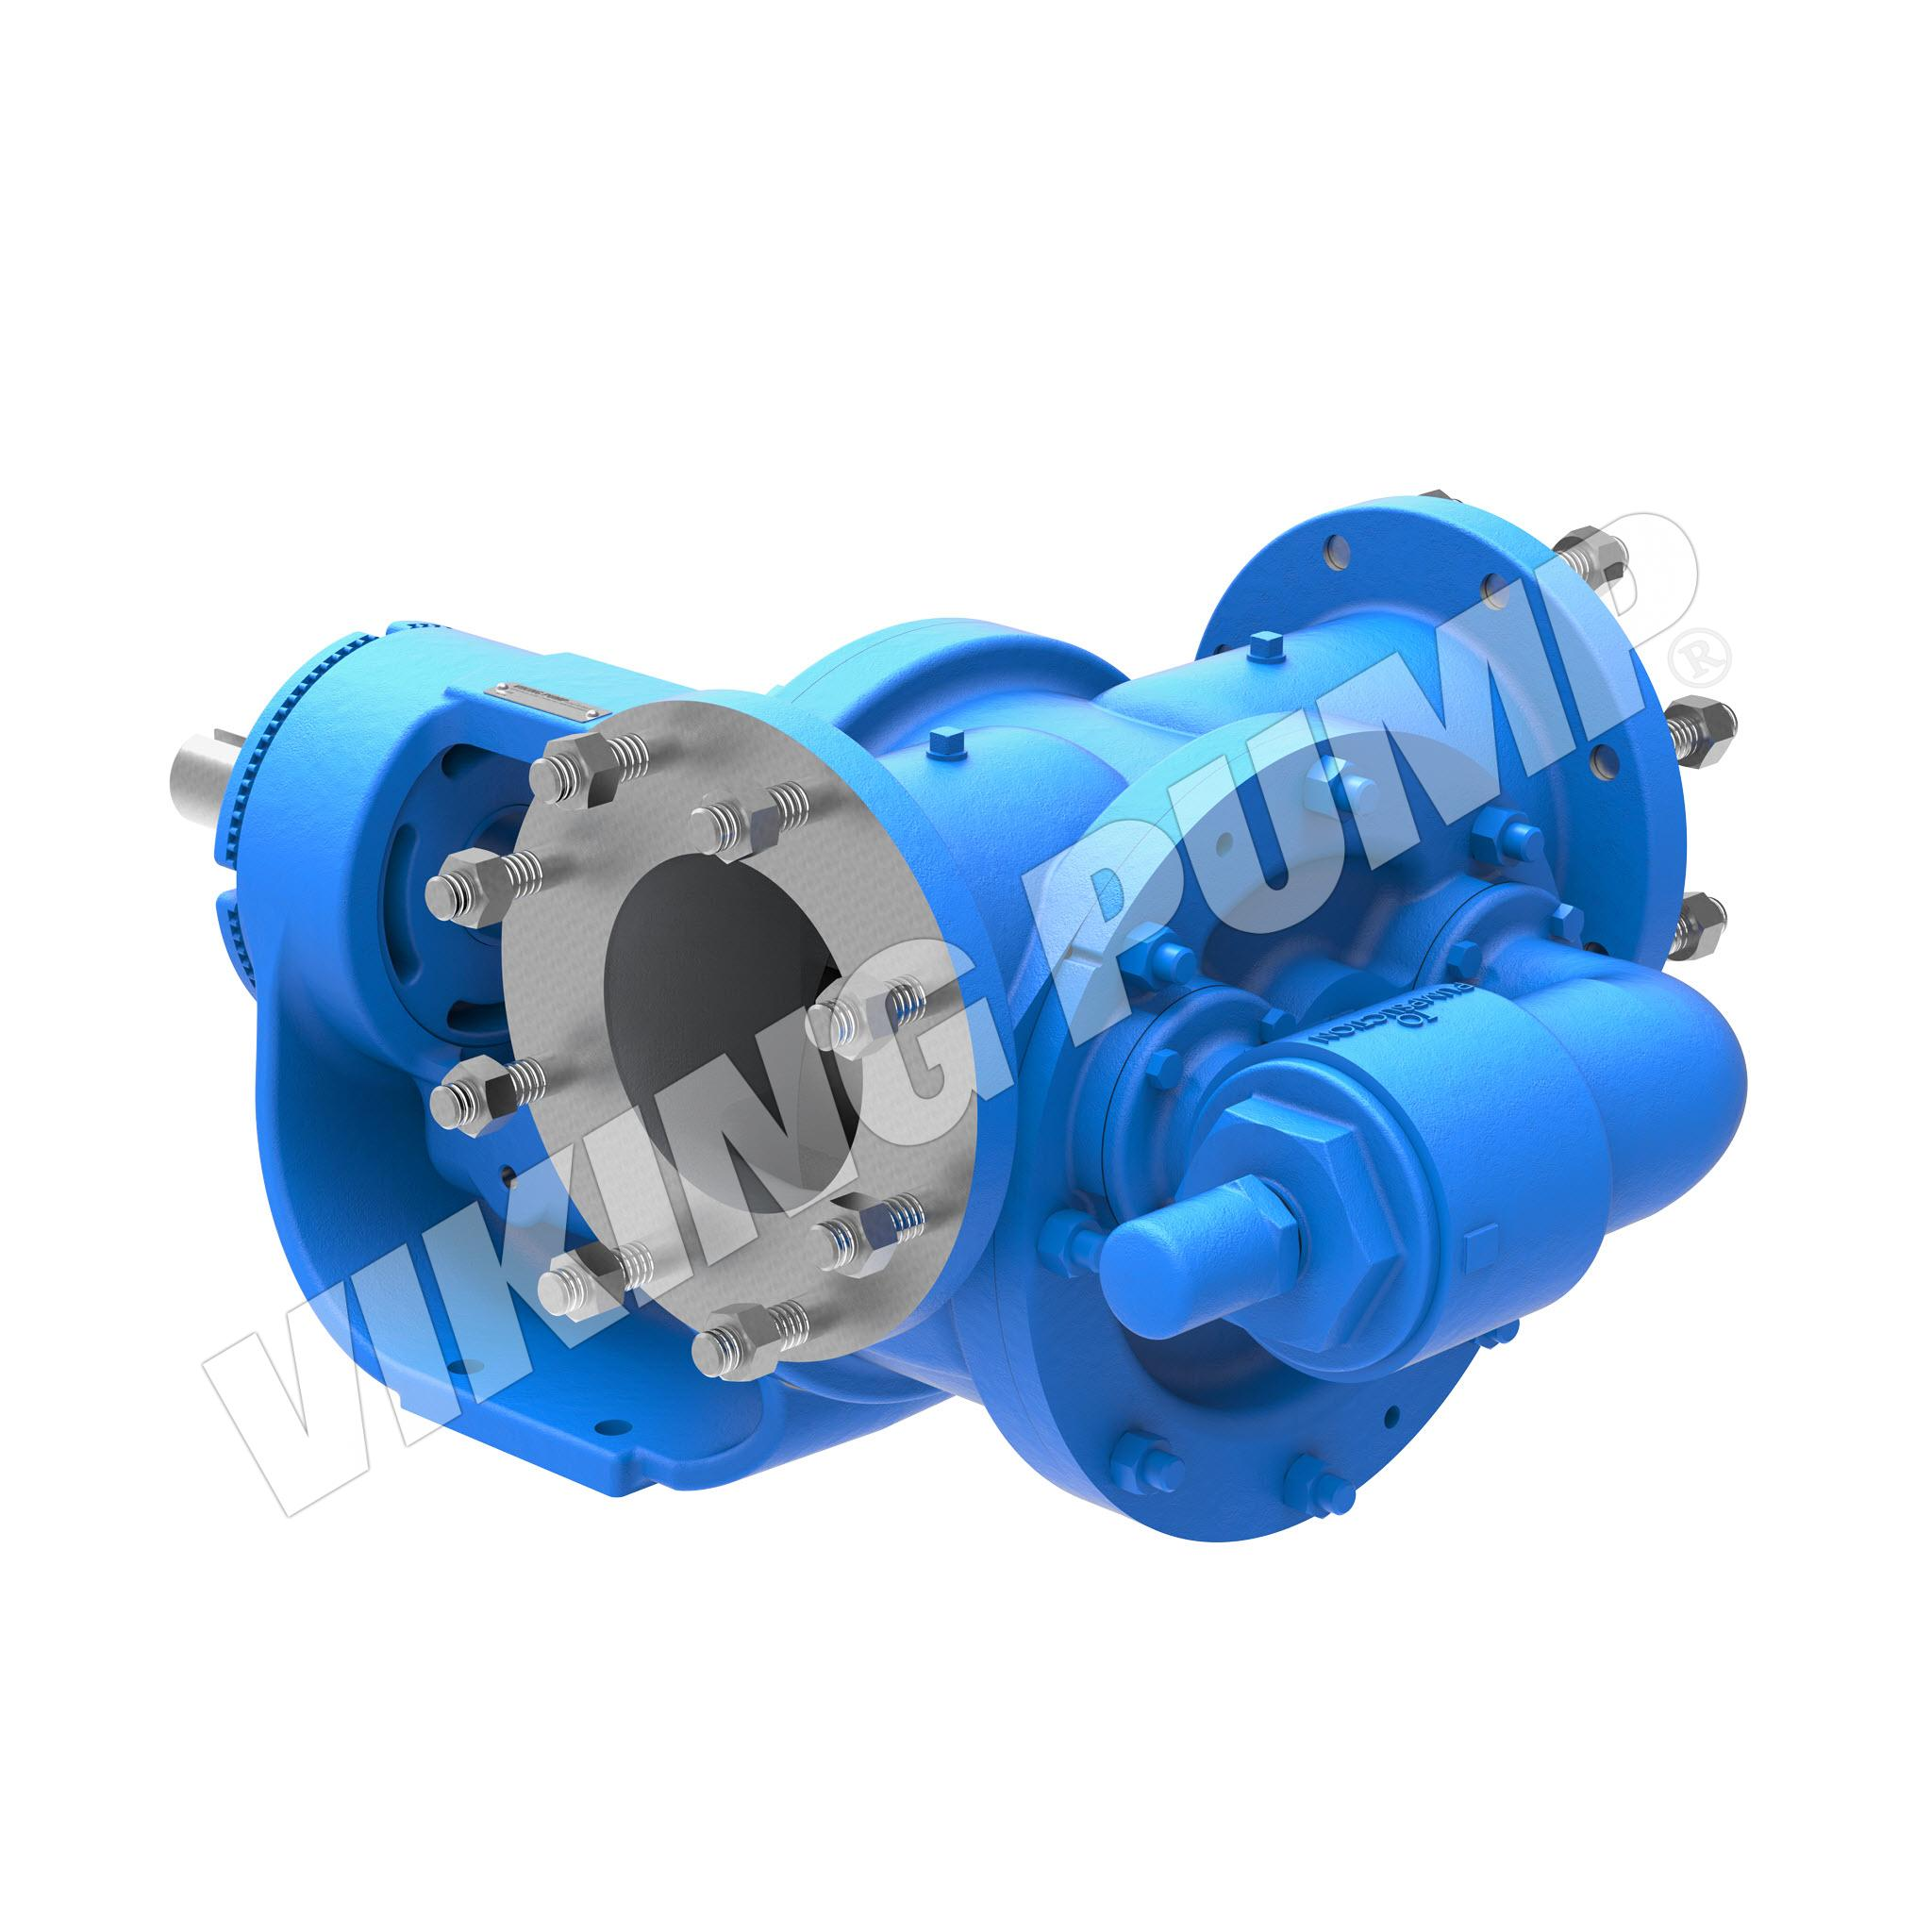 Pressure Regulator Valve On Electric Sprayer Control Valve Wiring